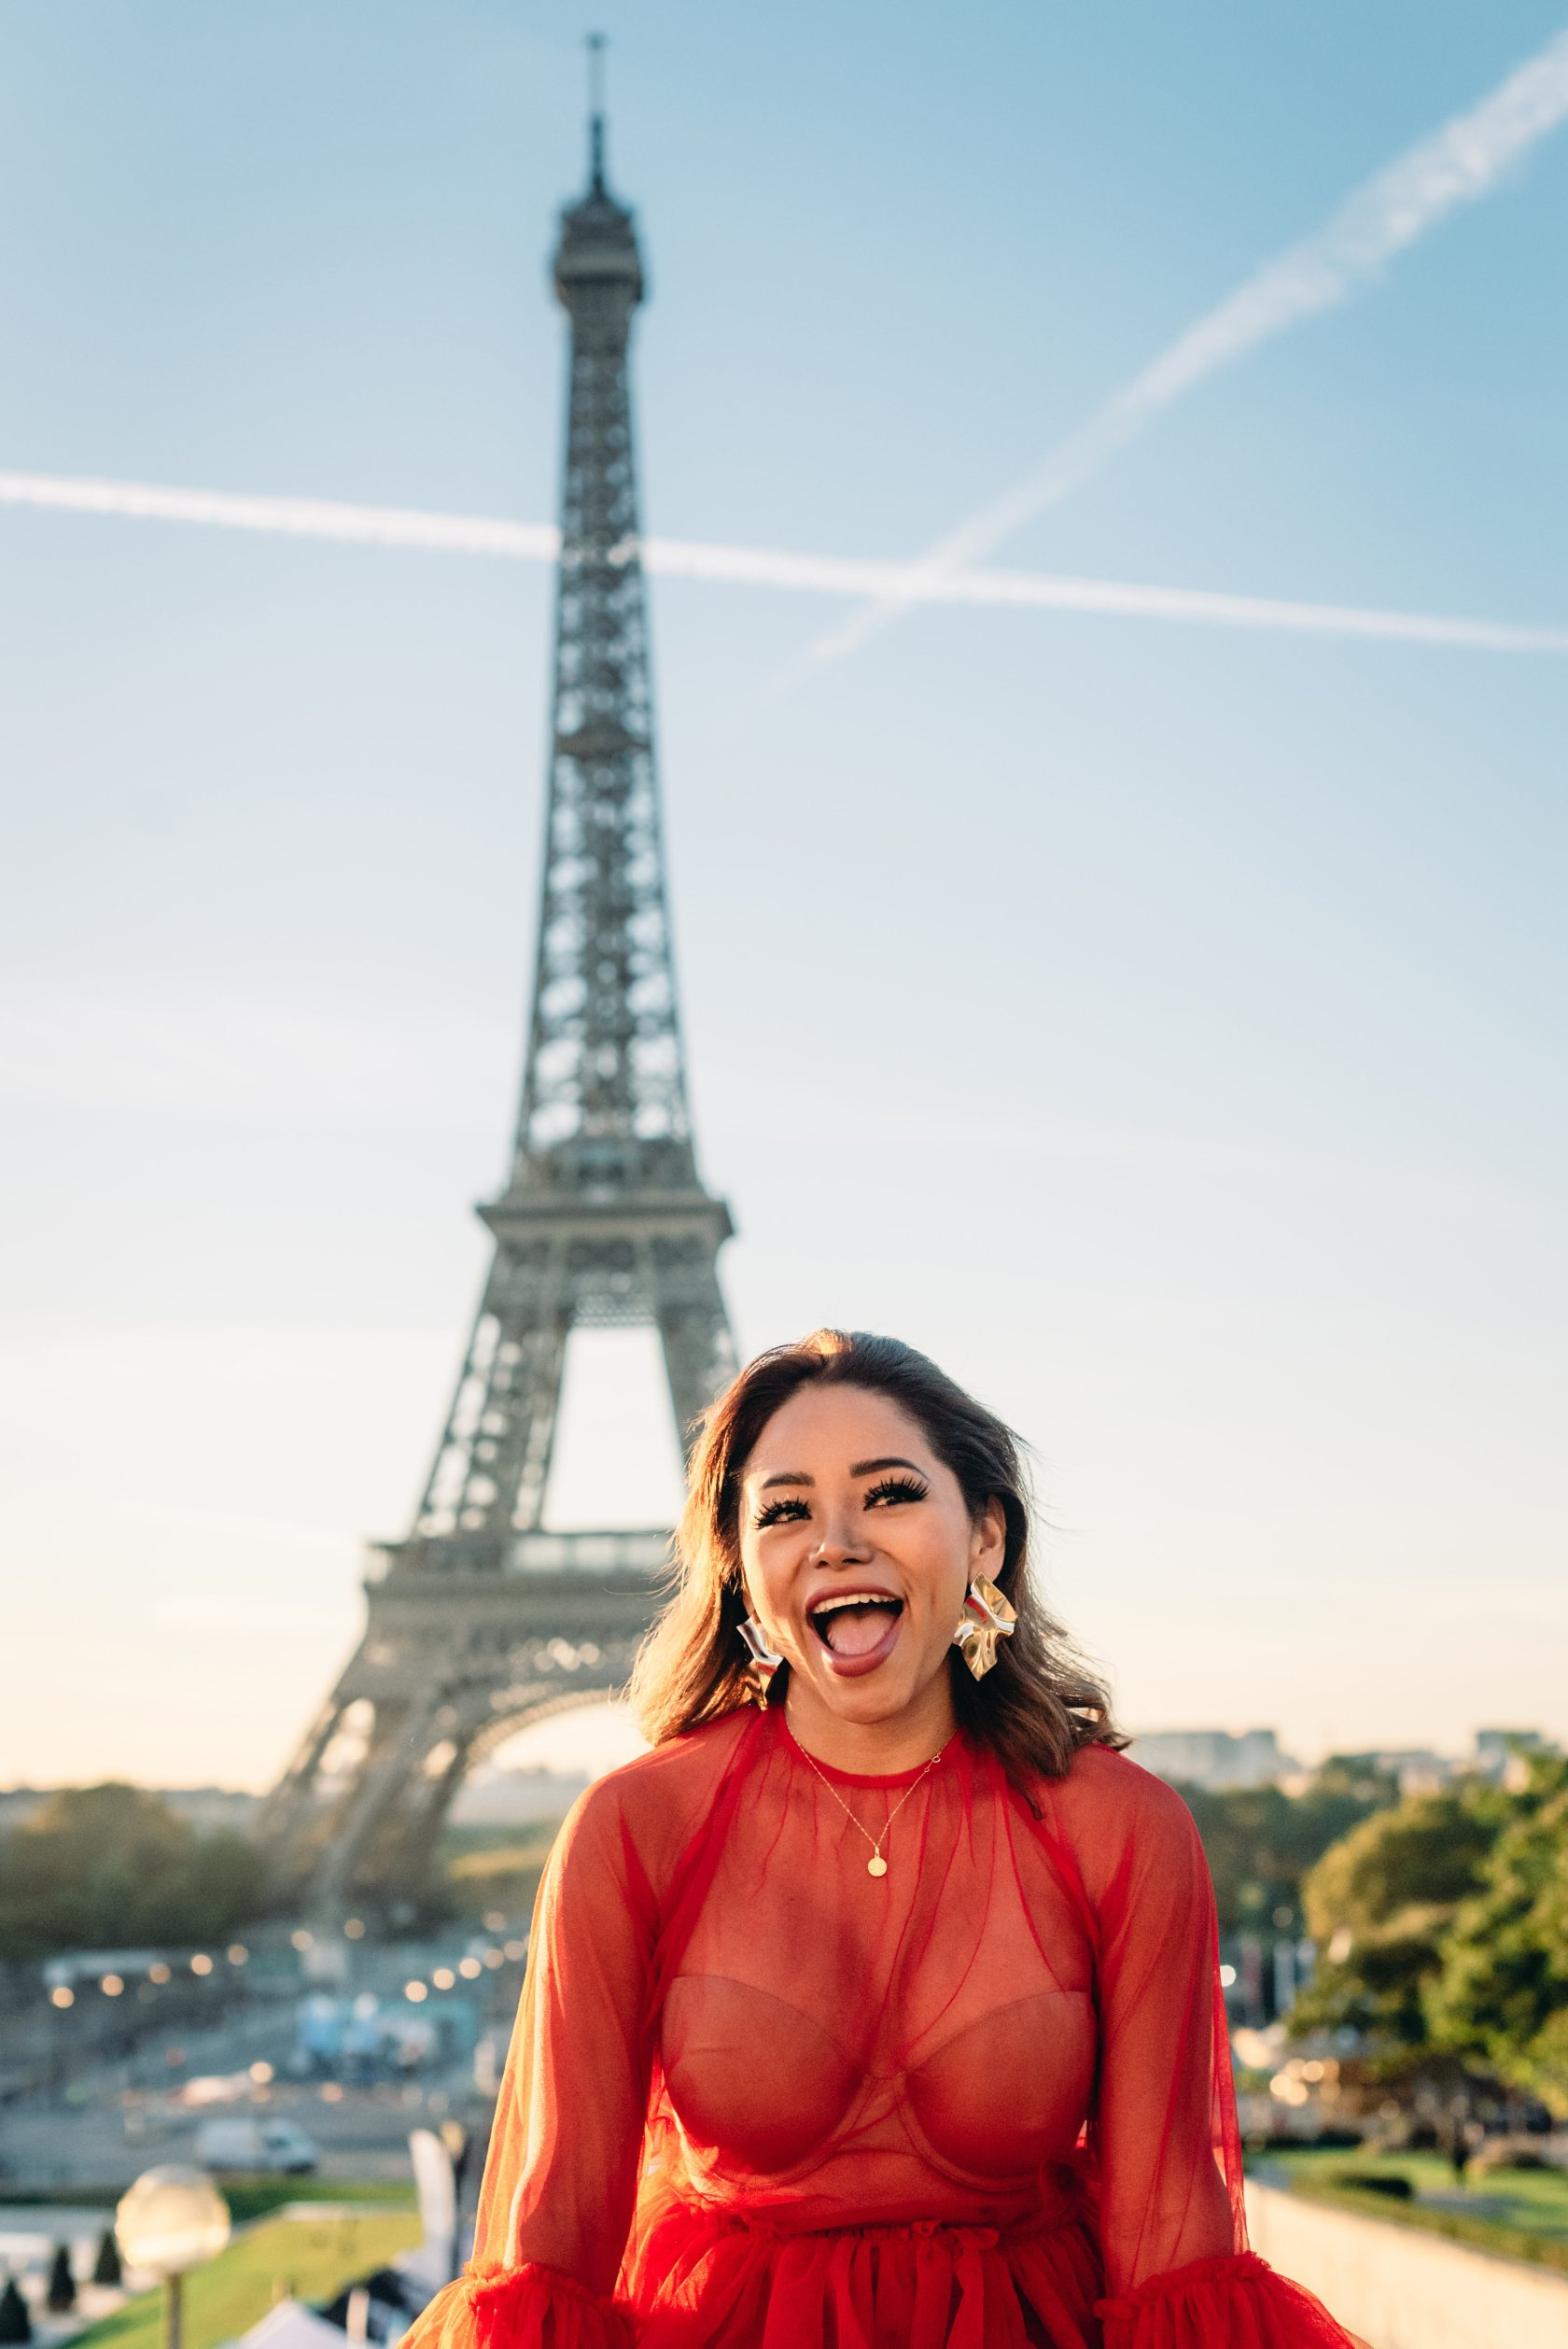 Portrait photography session in front of the Eiffel Tower in Paris, featuring a young woman in a mesh red dress and big gold earrings at sunrise